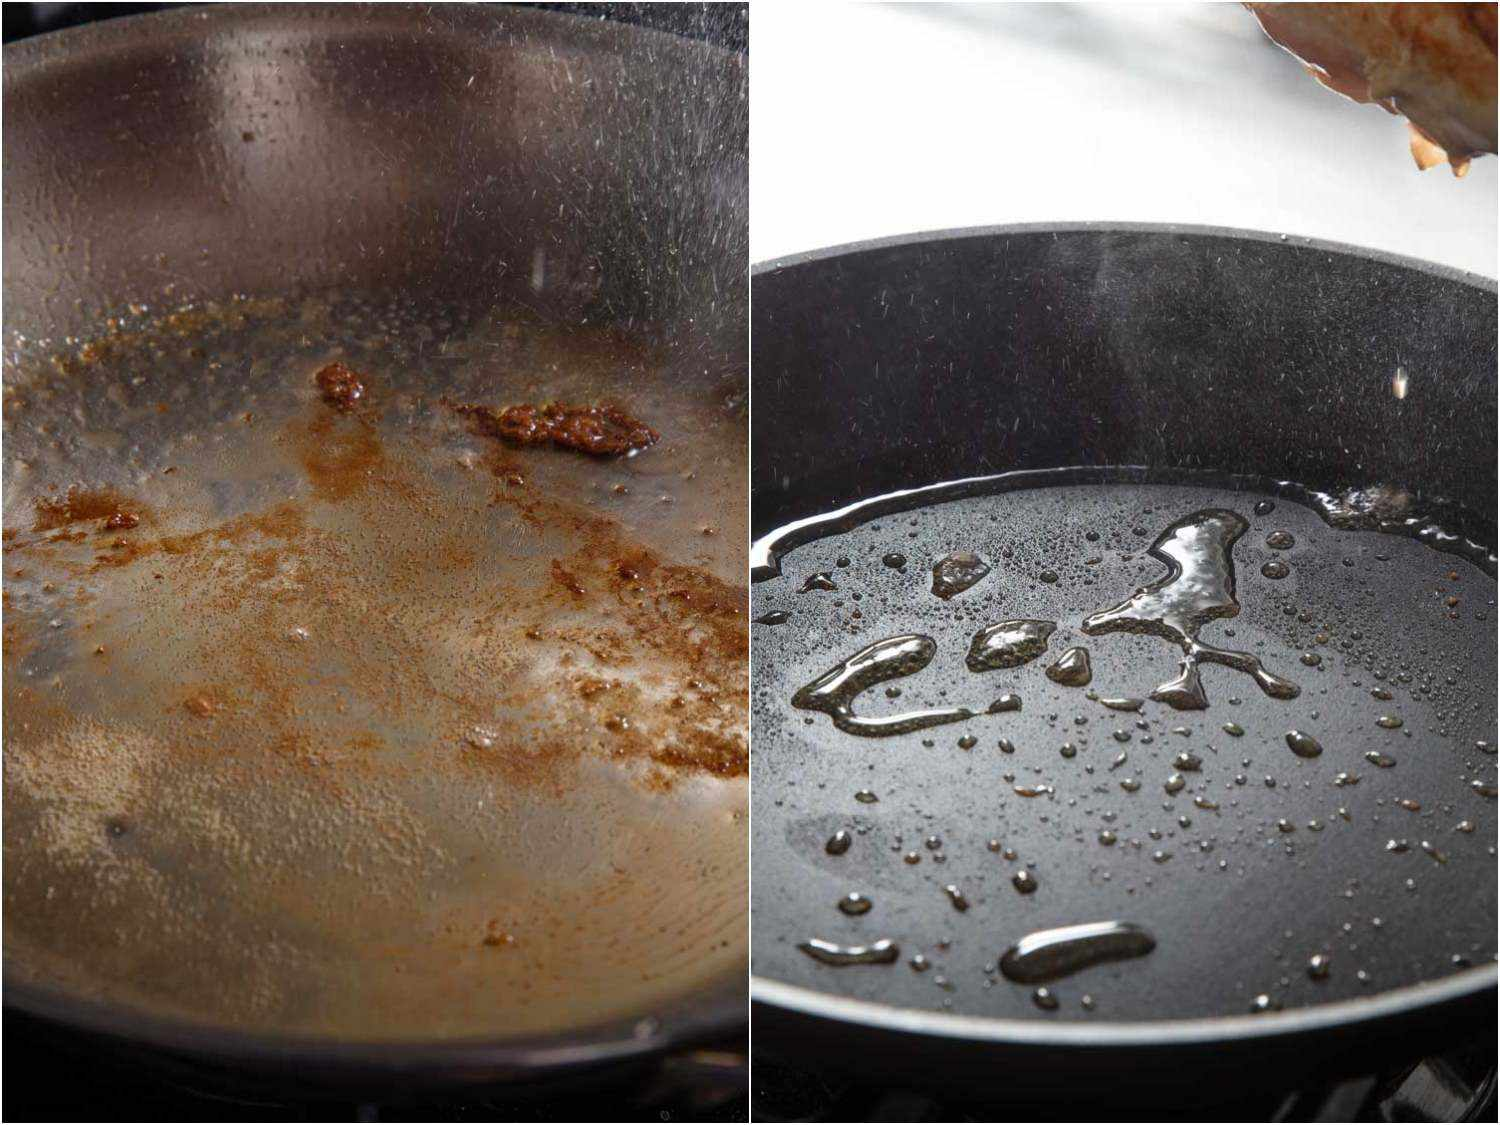 A side-by-side image showing the fond (browning) that develops on the bottom of a stainless steel skillet compared to the lack of it in a nonstick one.